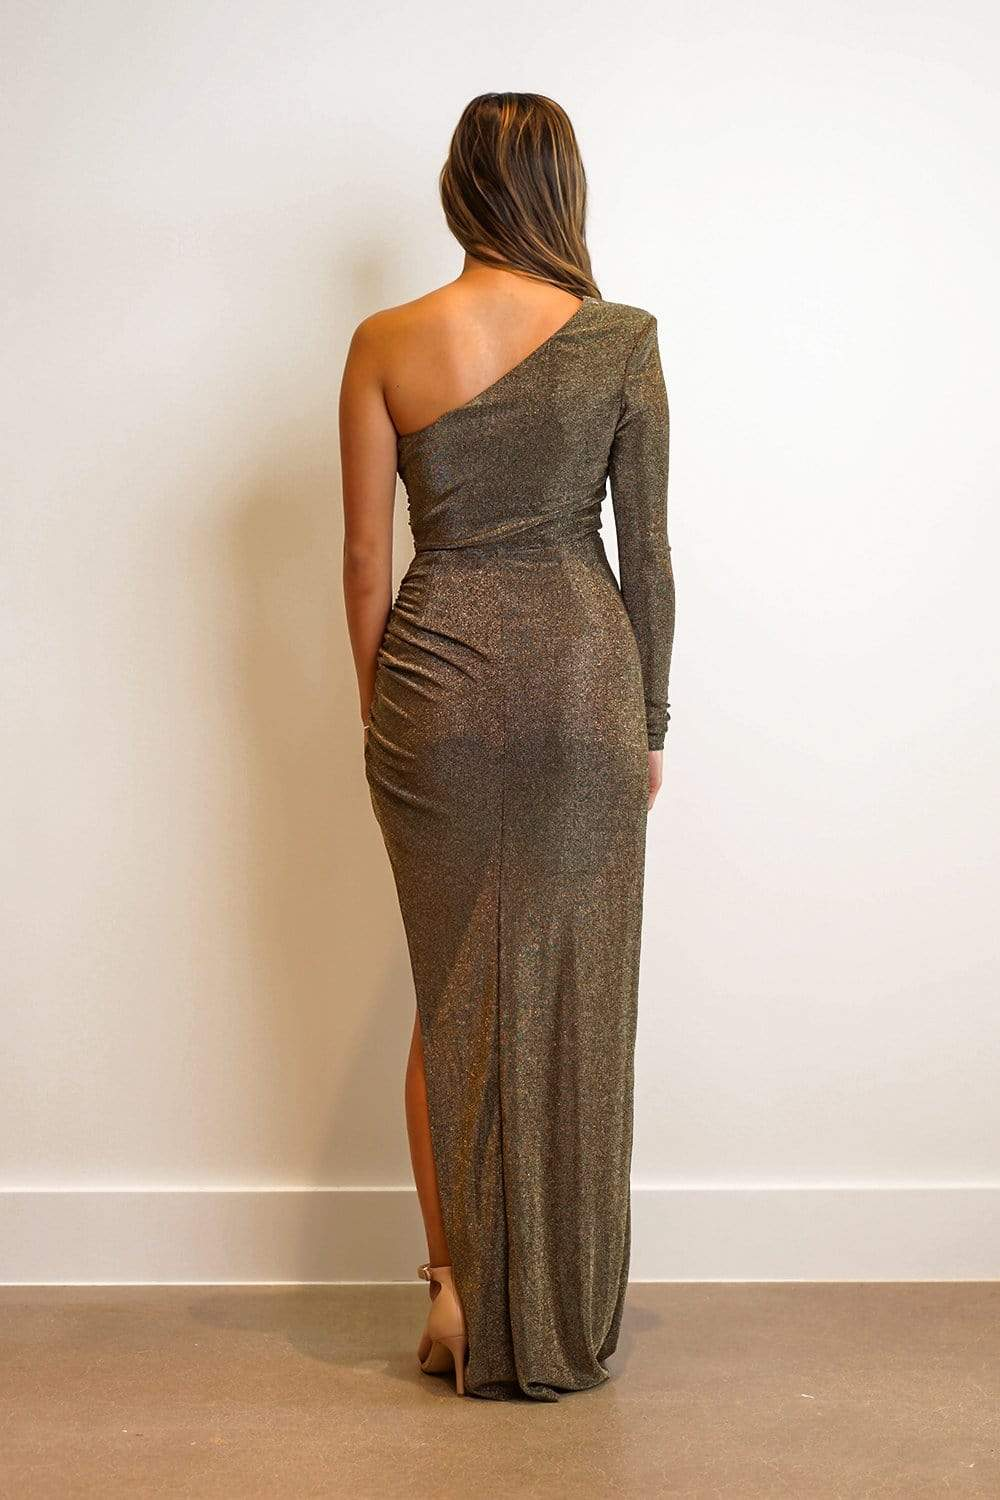 GOWN One Shoulder fitted Side Slit Dress Gold - Chloe Dao